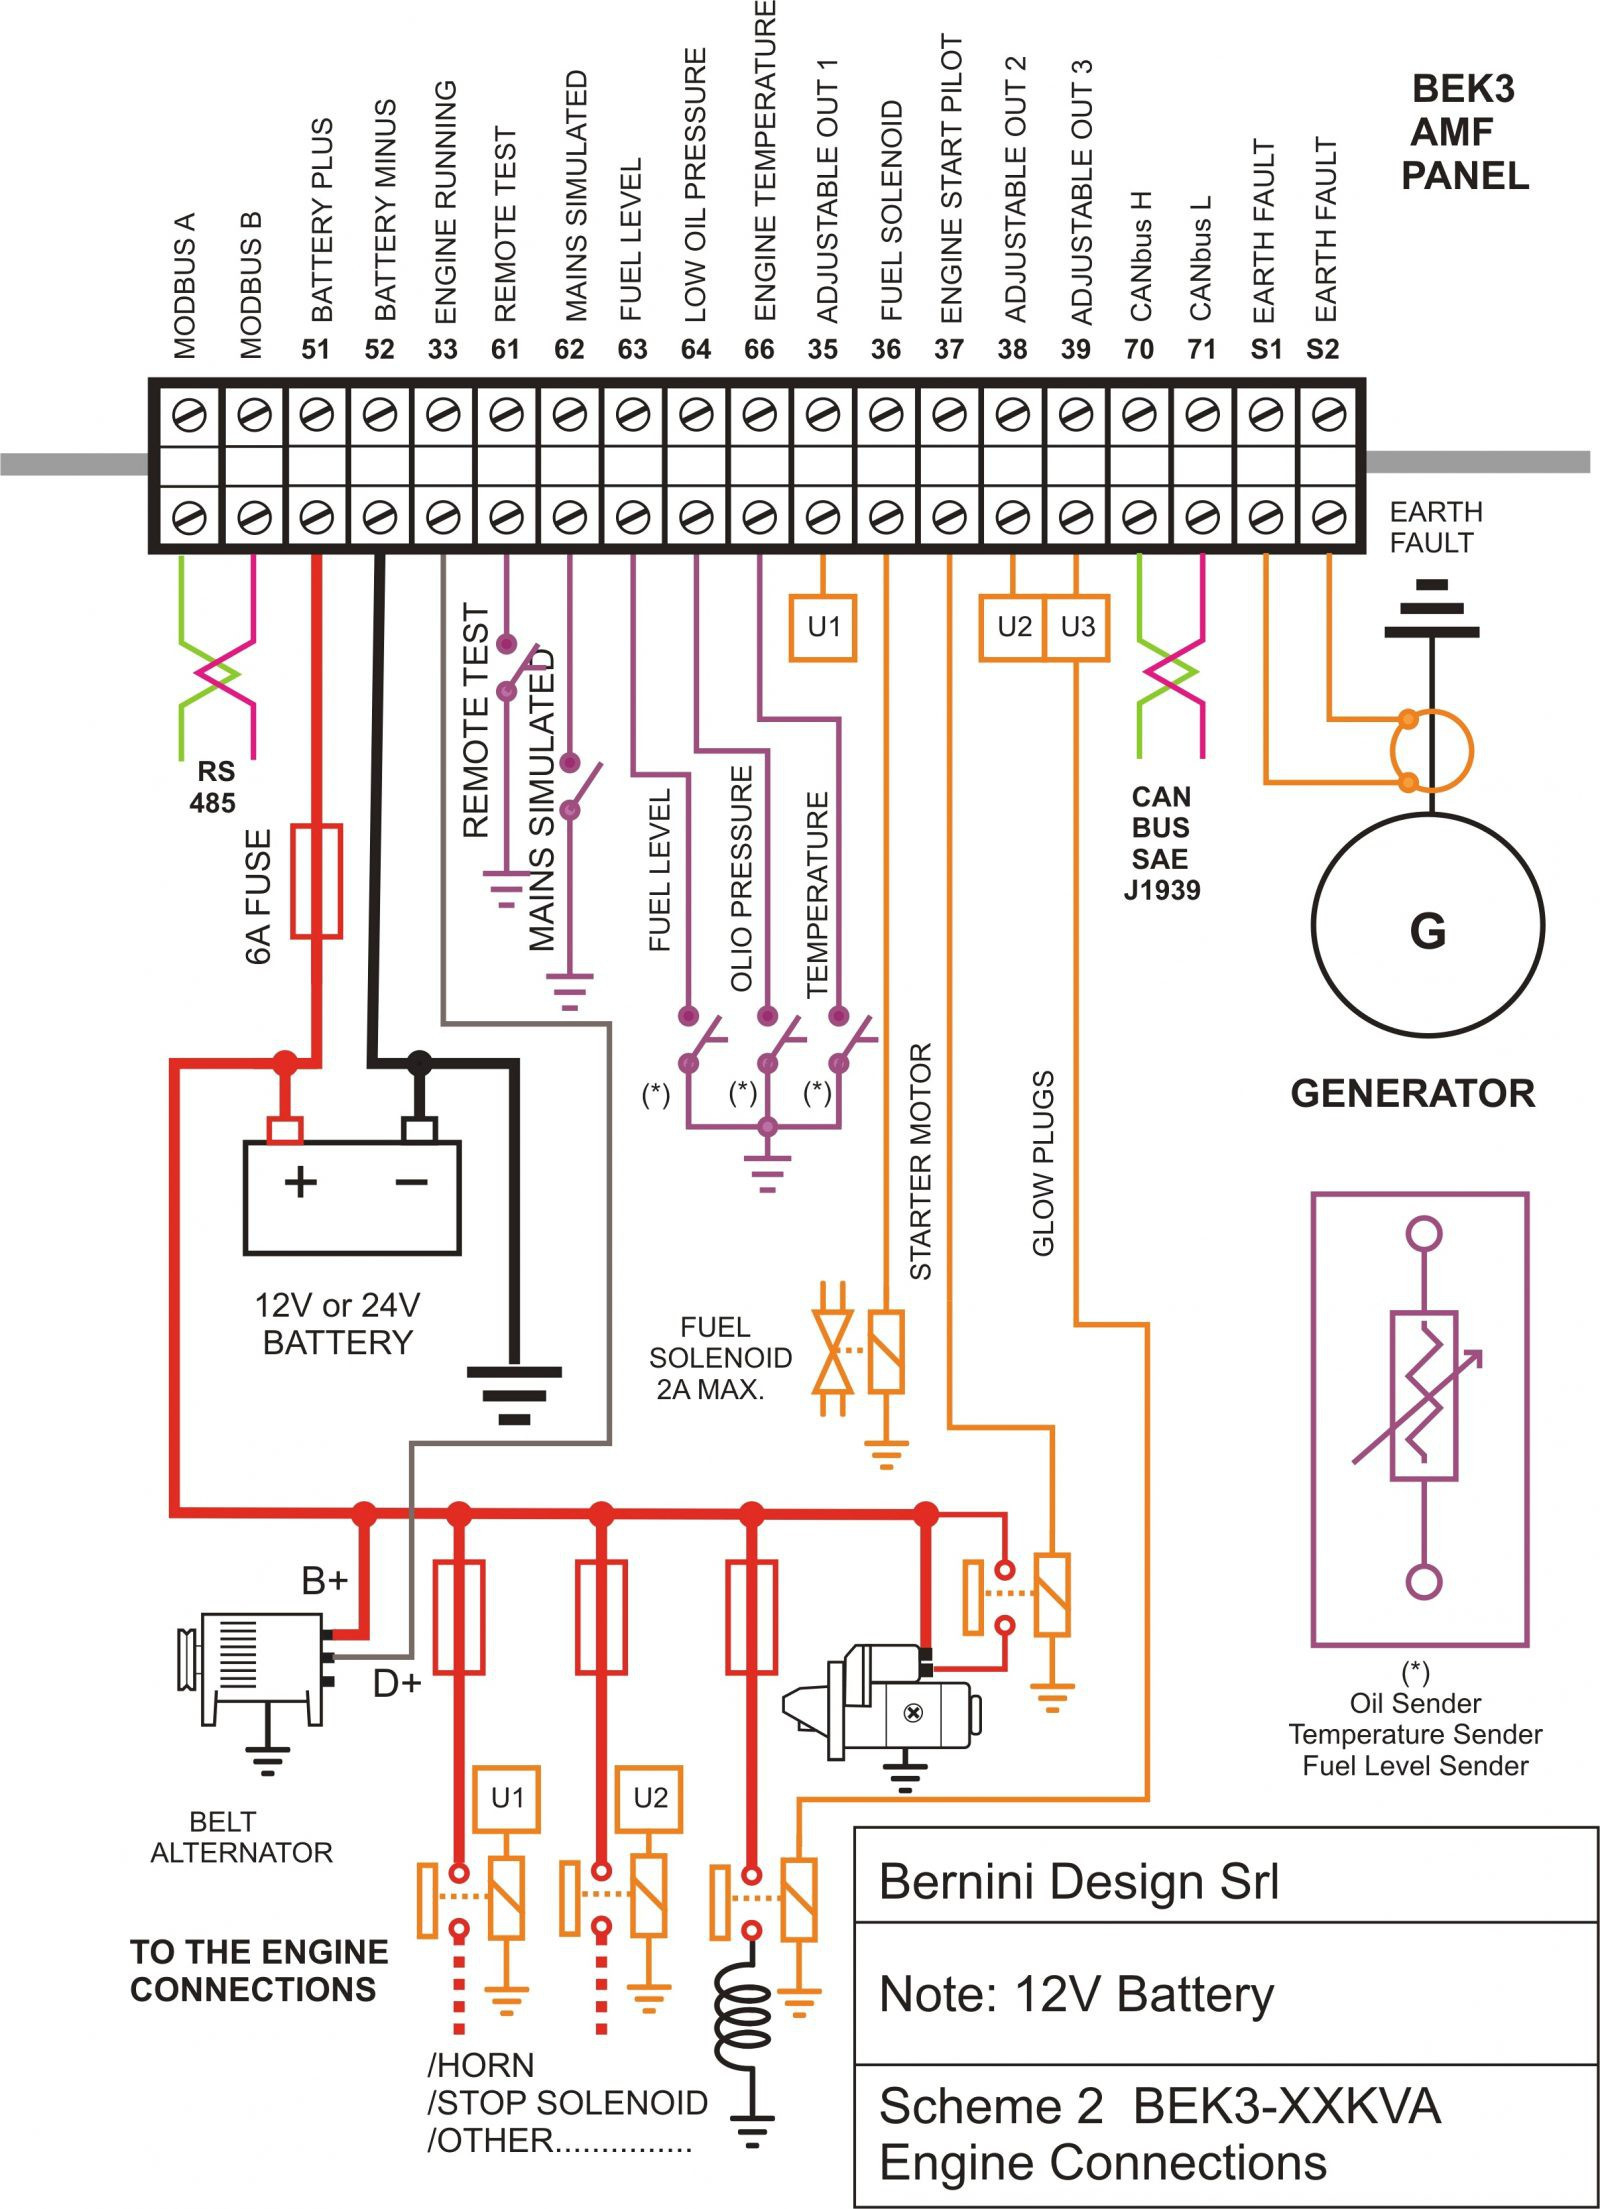 adt wiring diagram Collection-Adt Alarm Wiring Diagram Best Adt Alarm Wiring Diagram Luxury Accenta Alarm Wiring Diagram Wiring 12-m